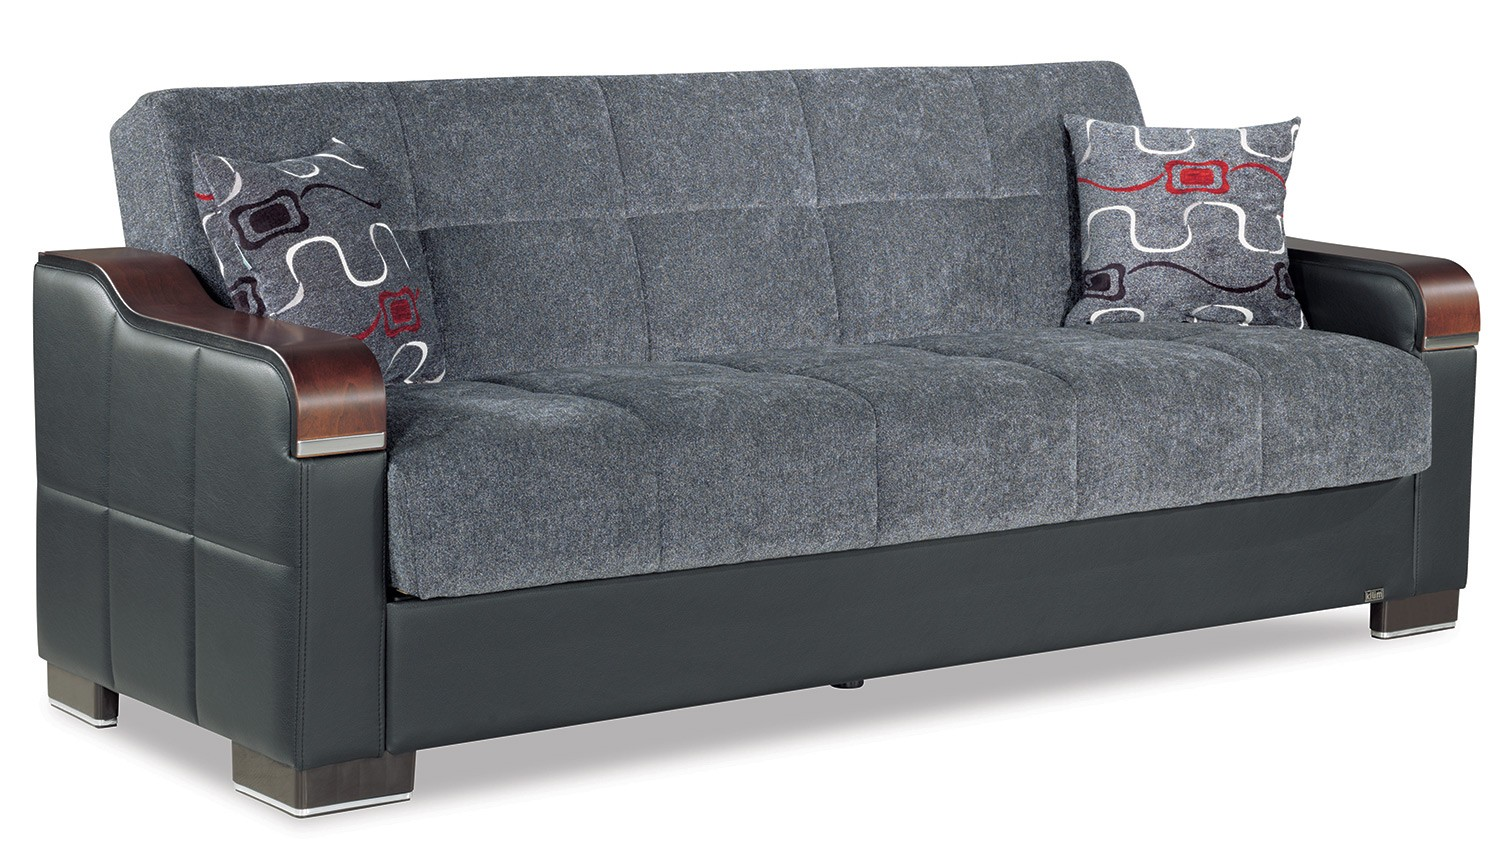 io metro sofa review dundee utd youth hibernian sofascore politan sofabed  brown leatherette beds star